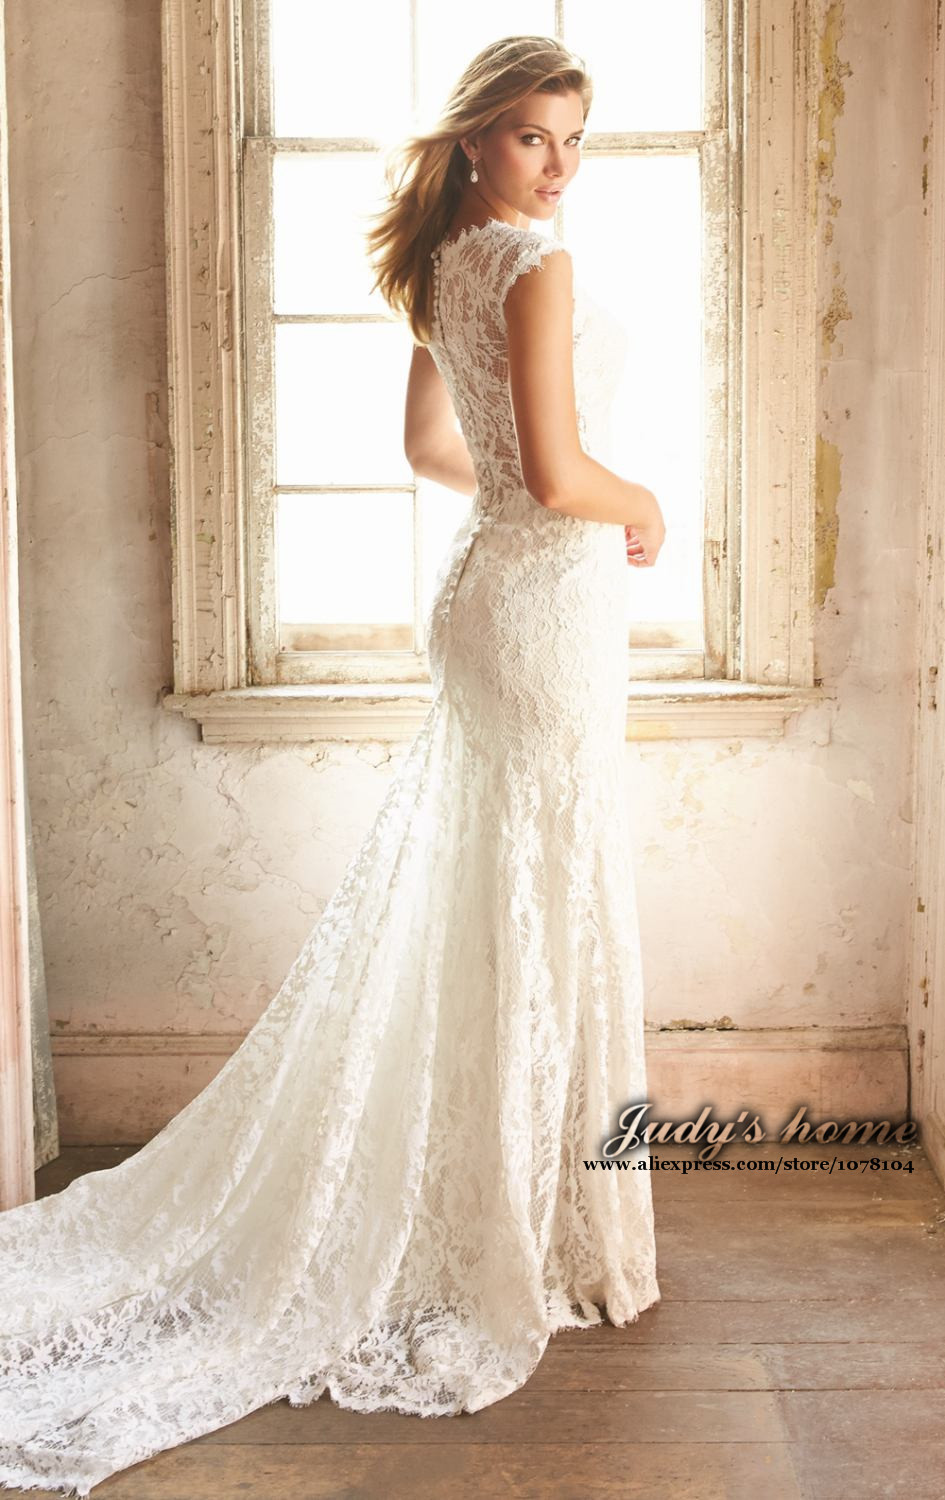 Lace back wedding dress designers dress blog edin for Wedding dresses lace back